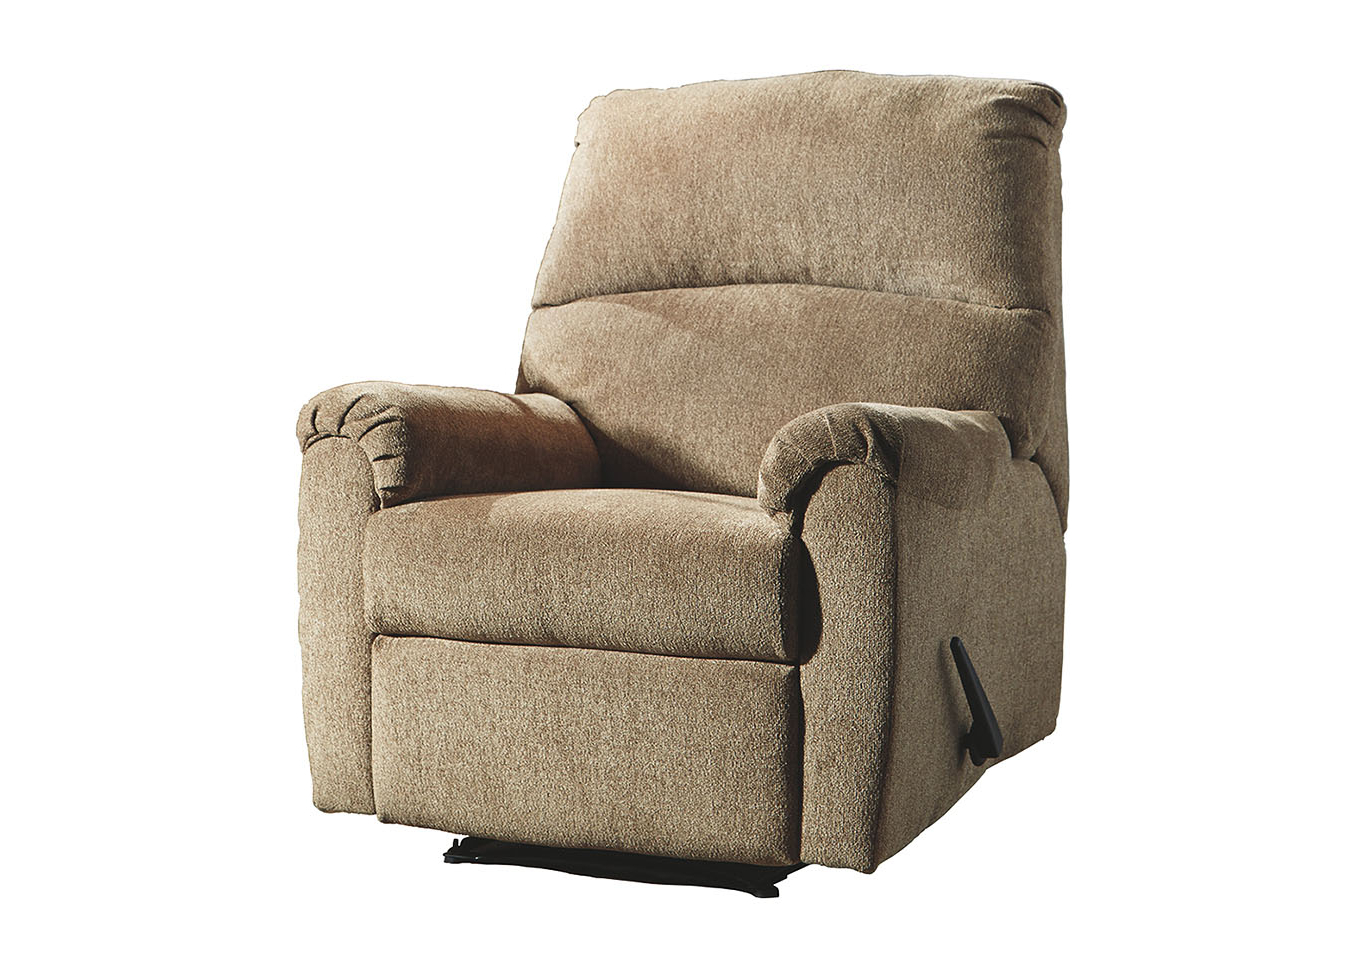 Vineland, Nj Throughout Vineland Polyester Swivel Armchairs (View 7 of 20)